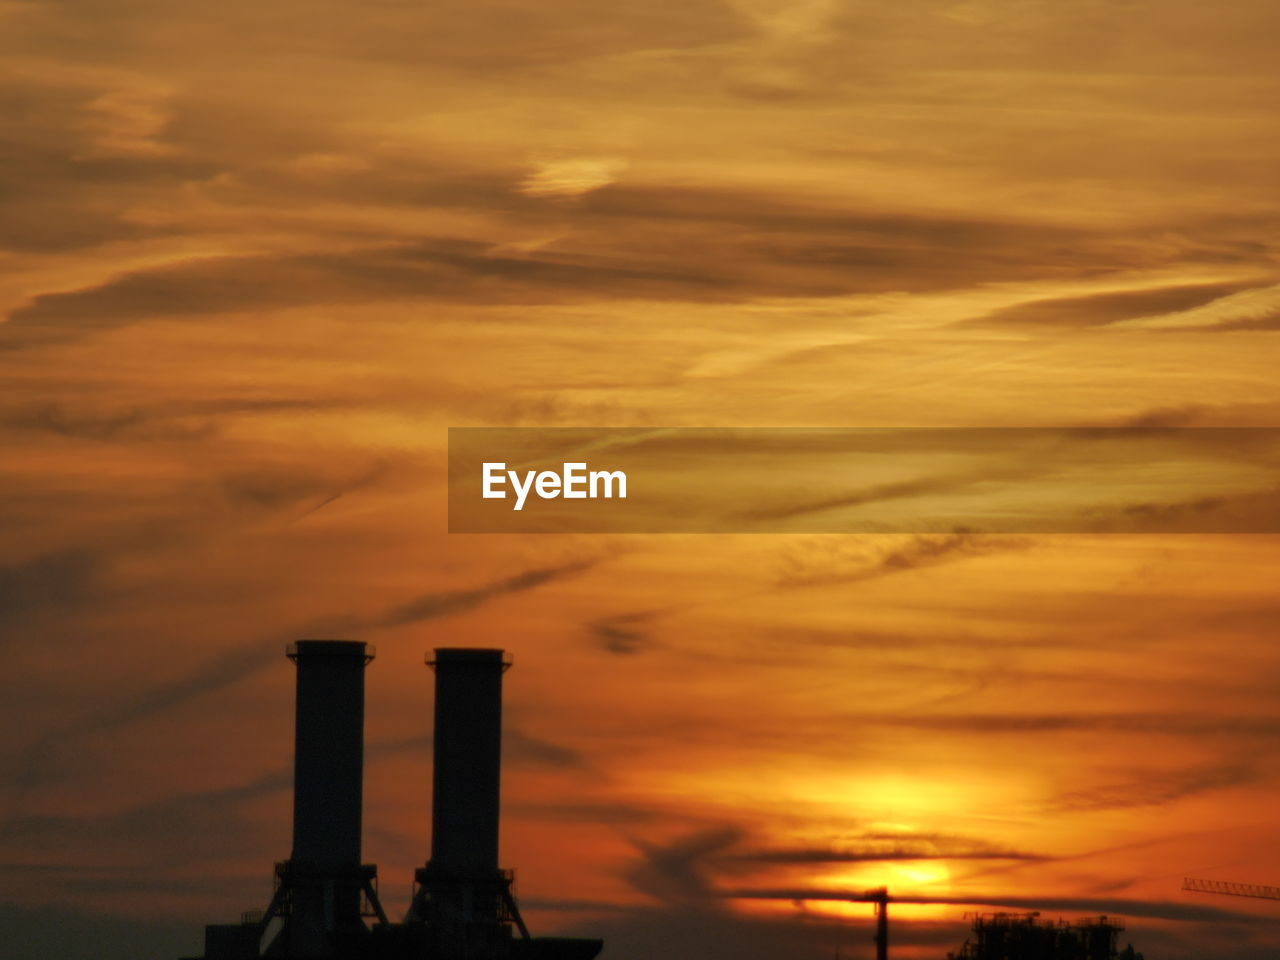 sunset, cloud - sky, orange color, sky, built structure, industry, architecture, no people, factory, building exterior, smoke stack, outdoors, beauty in nature, nature